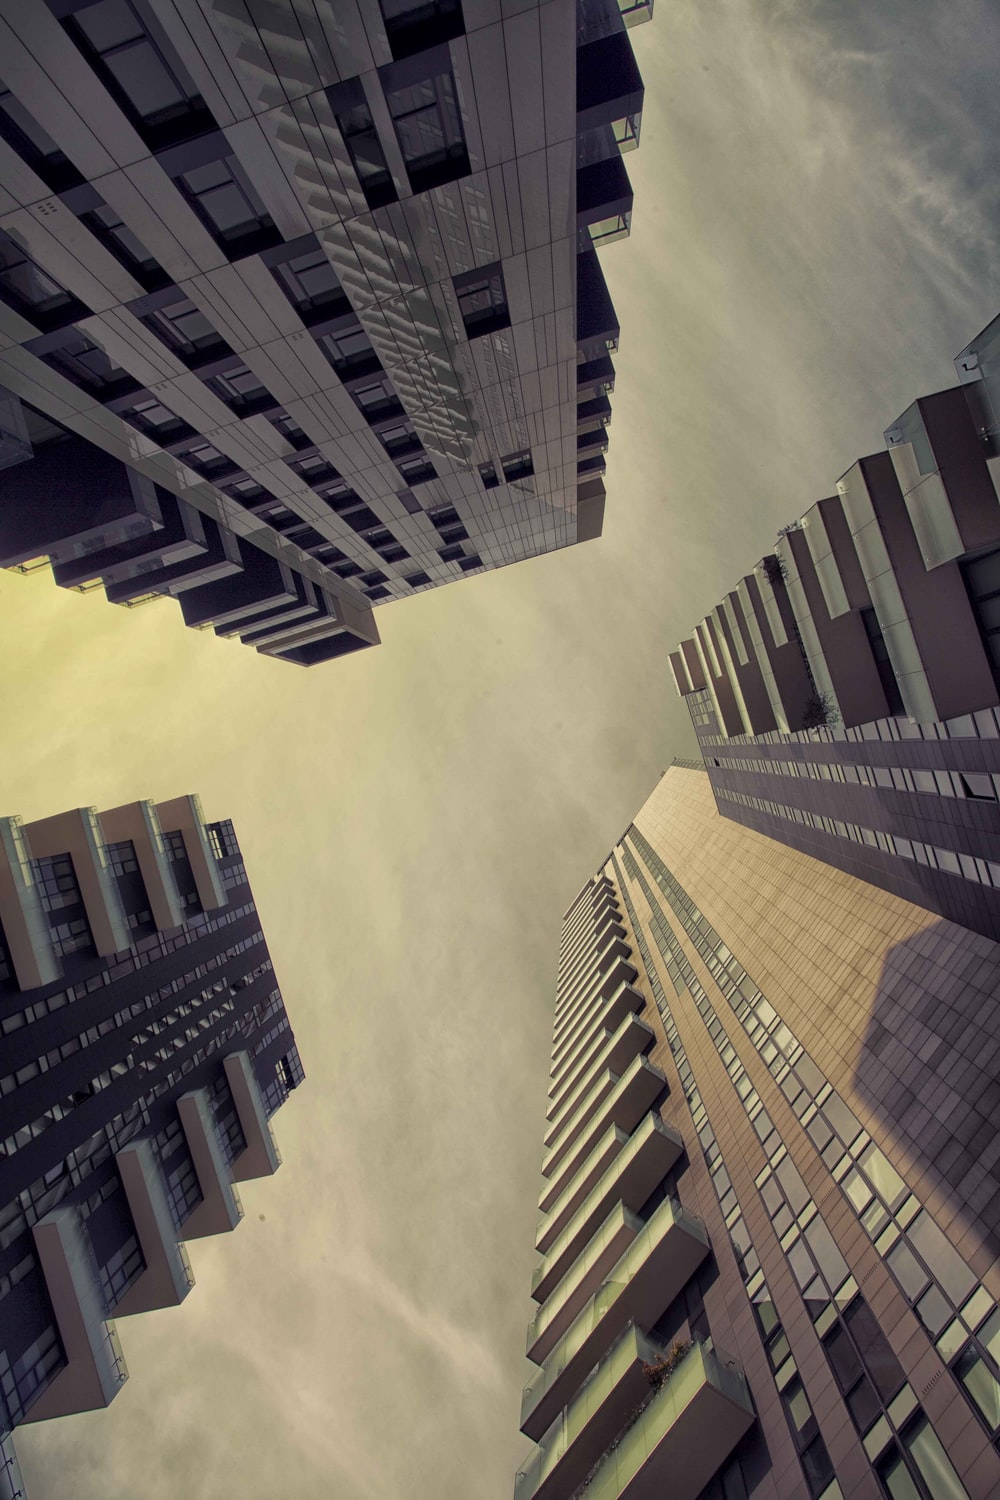 worm's eye view photography of three high-rise buildings